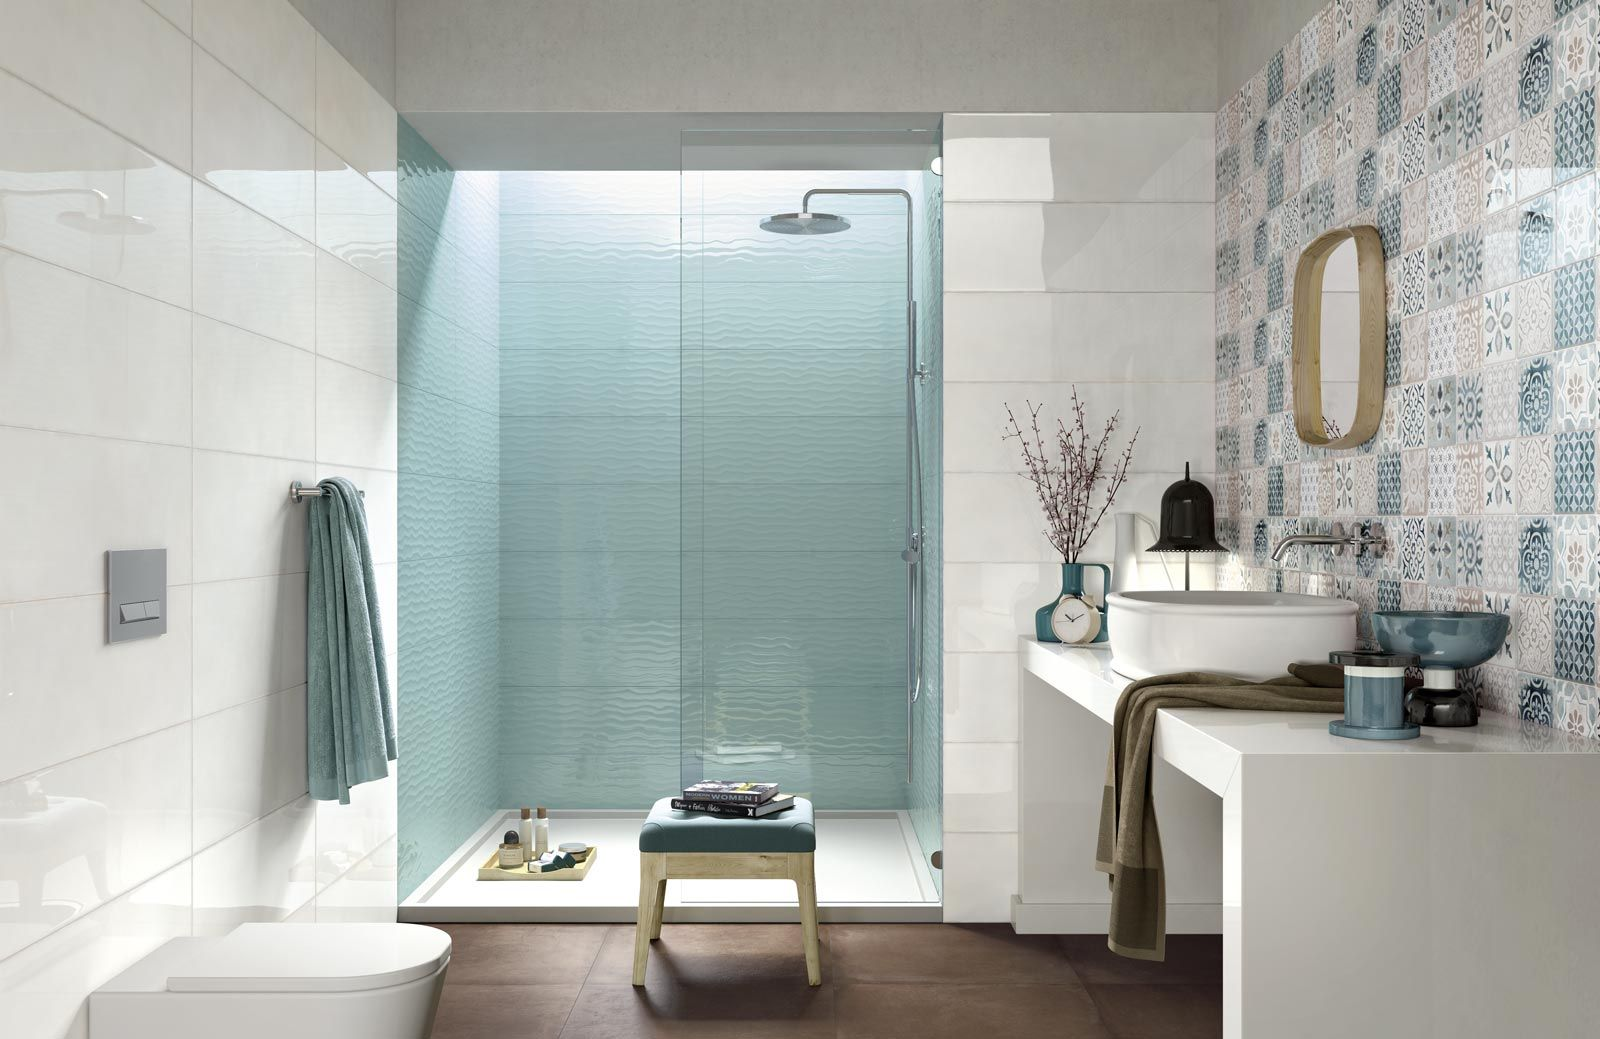 Bathroom Flooring in Porcelain Stoneware | Ragno | Ideas for the ...